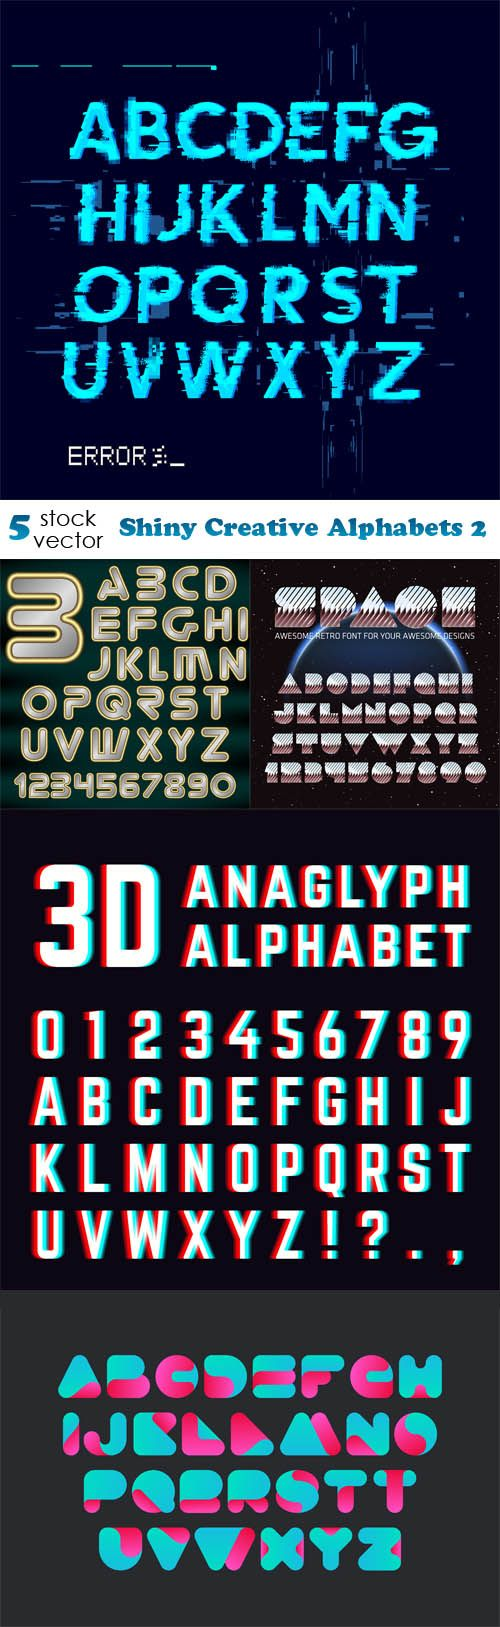 Vectors - Shiny Creative Alphabets 2